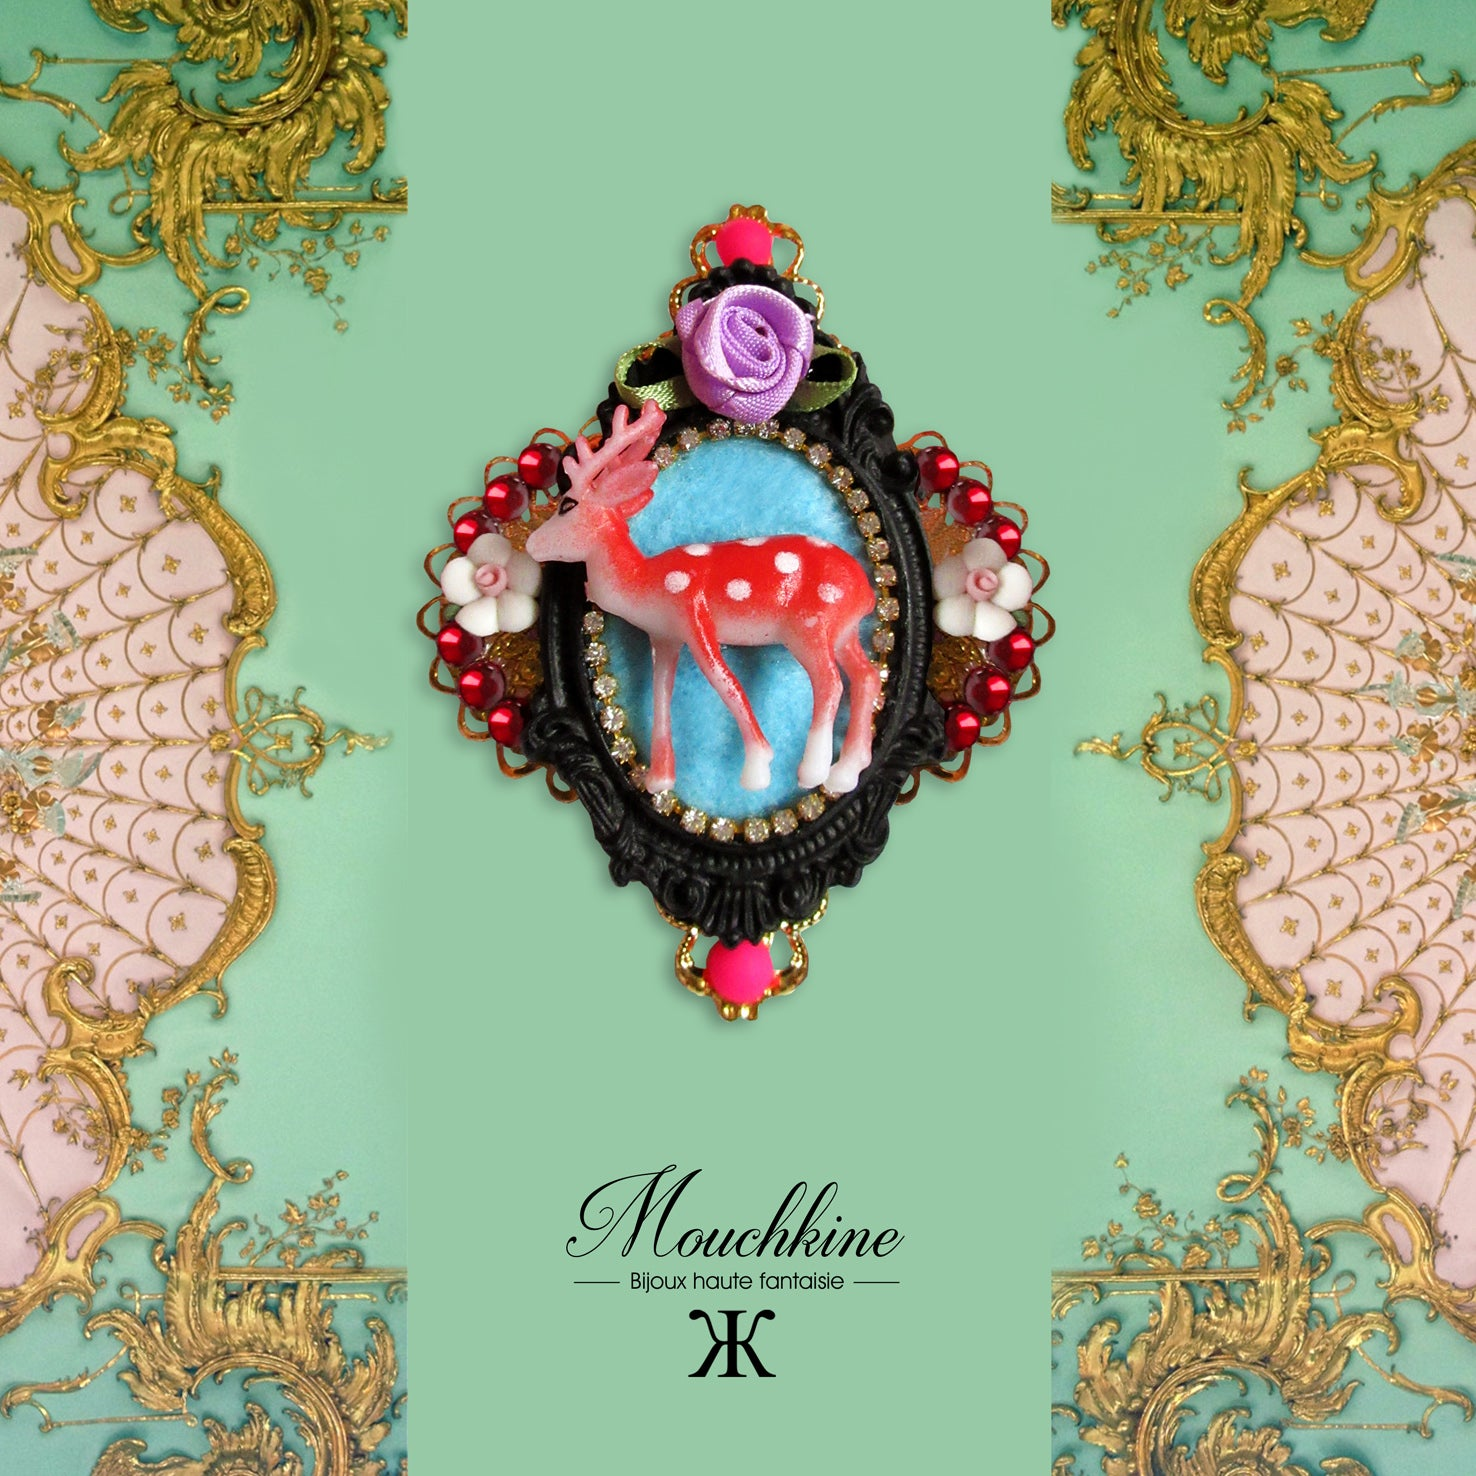 mouchkine jewelry bambi baroque brooch, a haute couture jewel for a chic and elegant style, with a stylish and unique look. Broche bambi baroque par Mouchkine, un bijou unique plein de charme, chic, precieux et décalé pour un look mode et très couture.